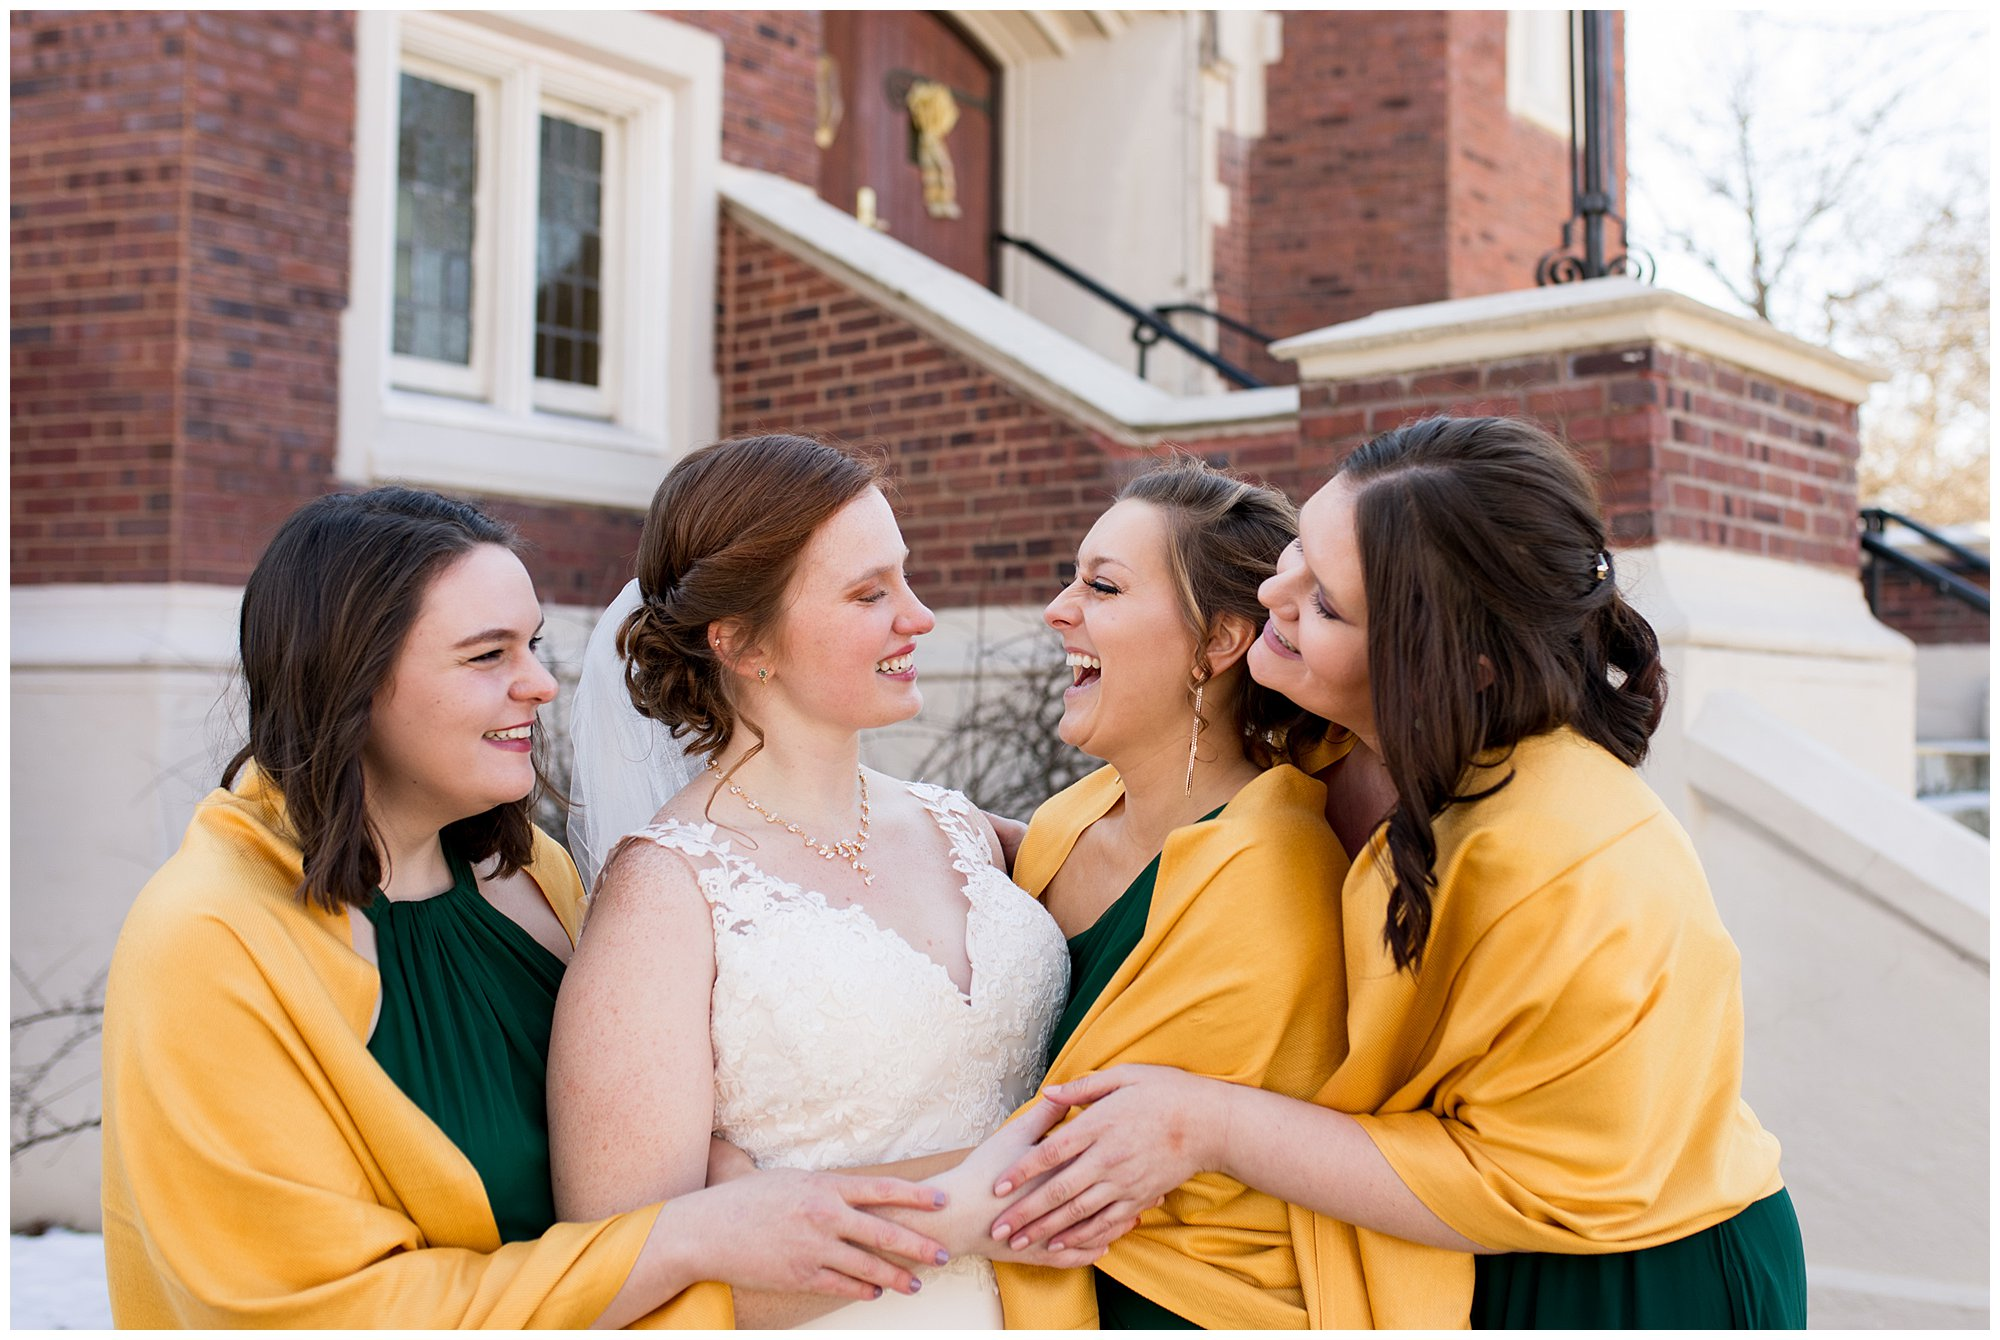 bride and bridesmaids laugh together outside of church before wedding ceremony